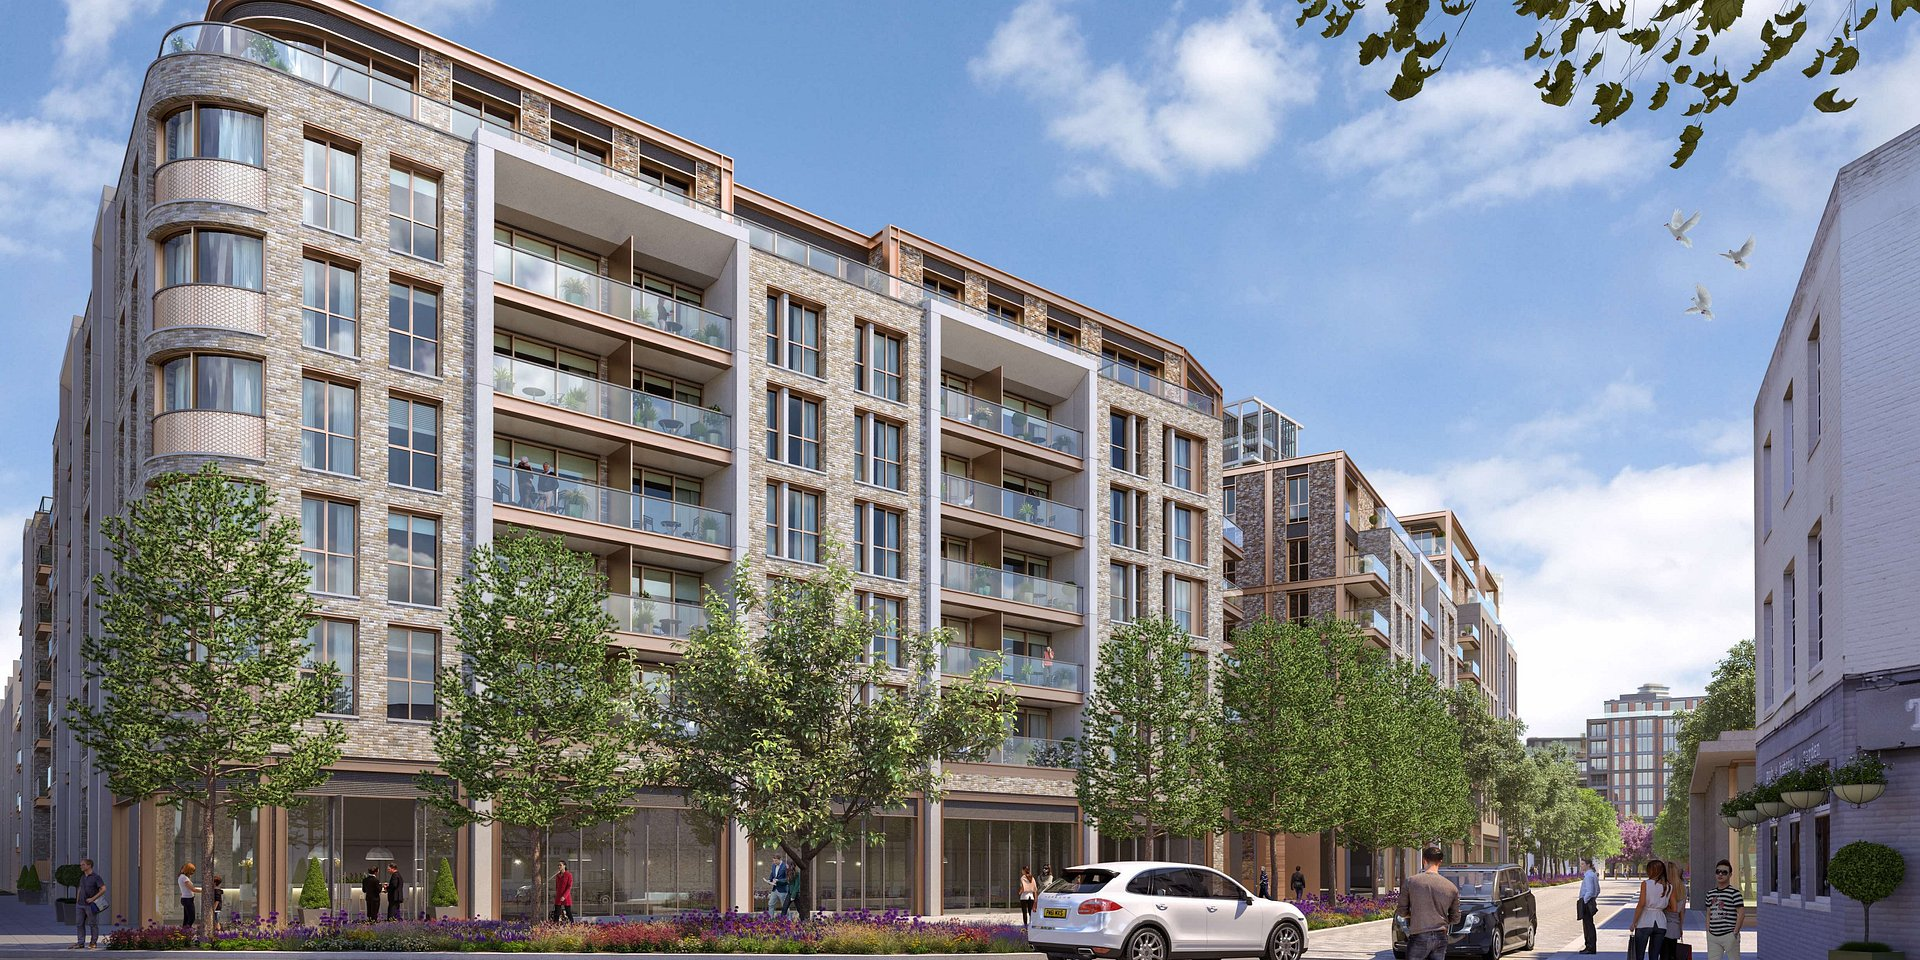 Coldwell Banker Residential Brokerage Announces New South West London Property King's Road Park